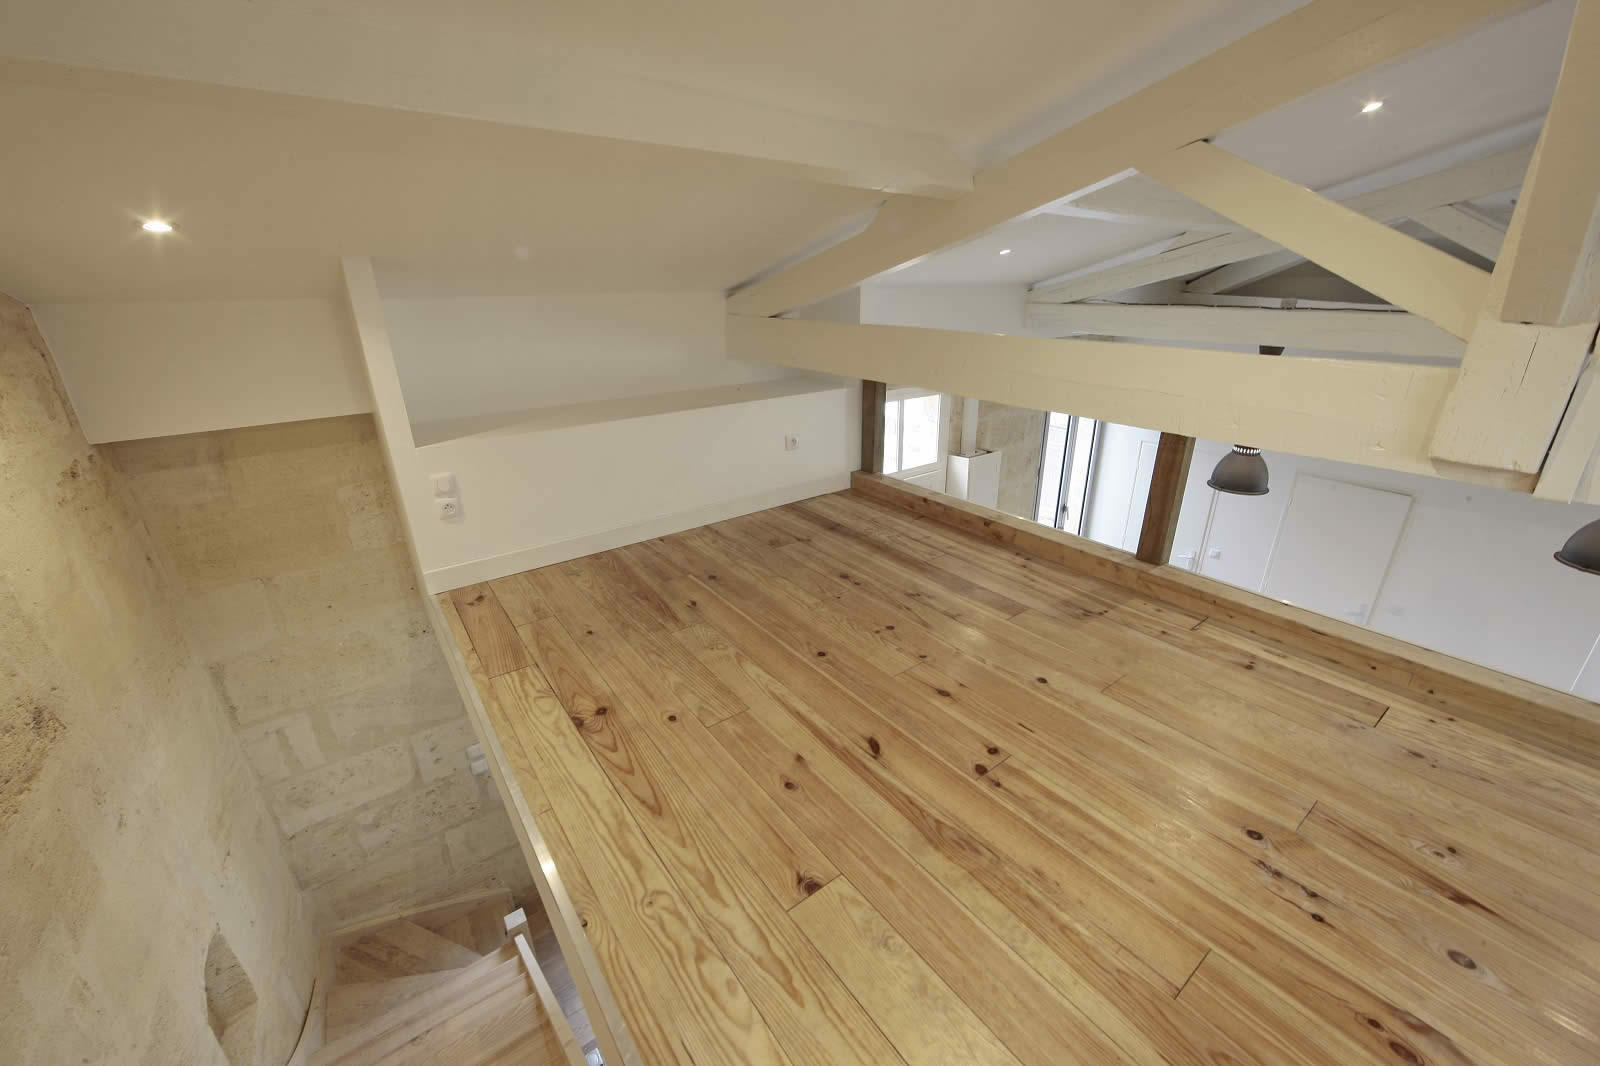 Renovate Kitchen Renovate House With Parquet Floors Exposed Beams And Open